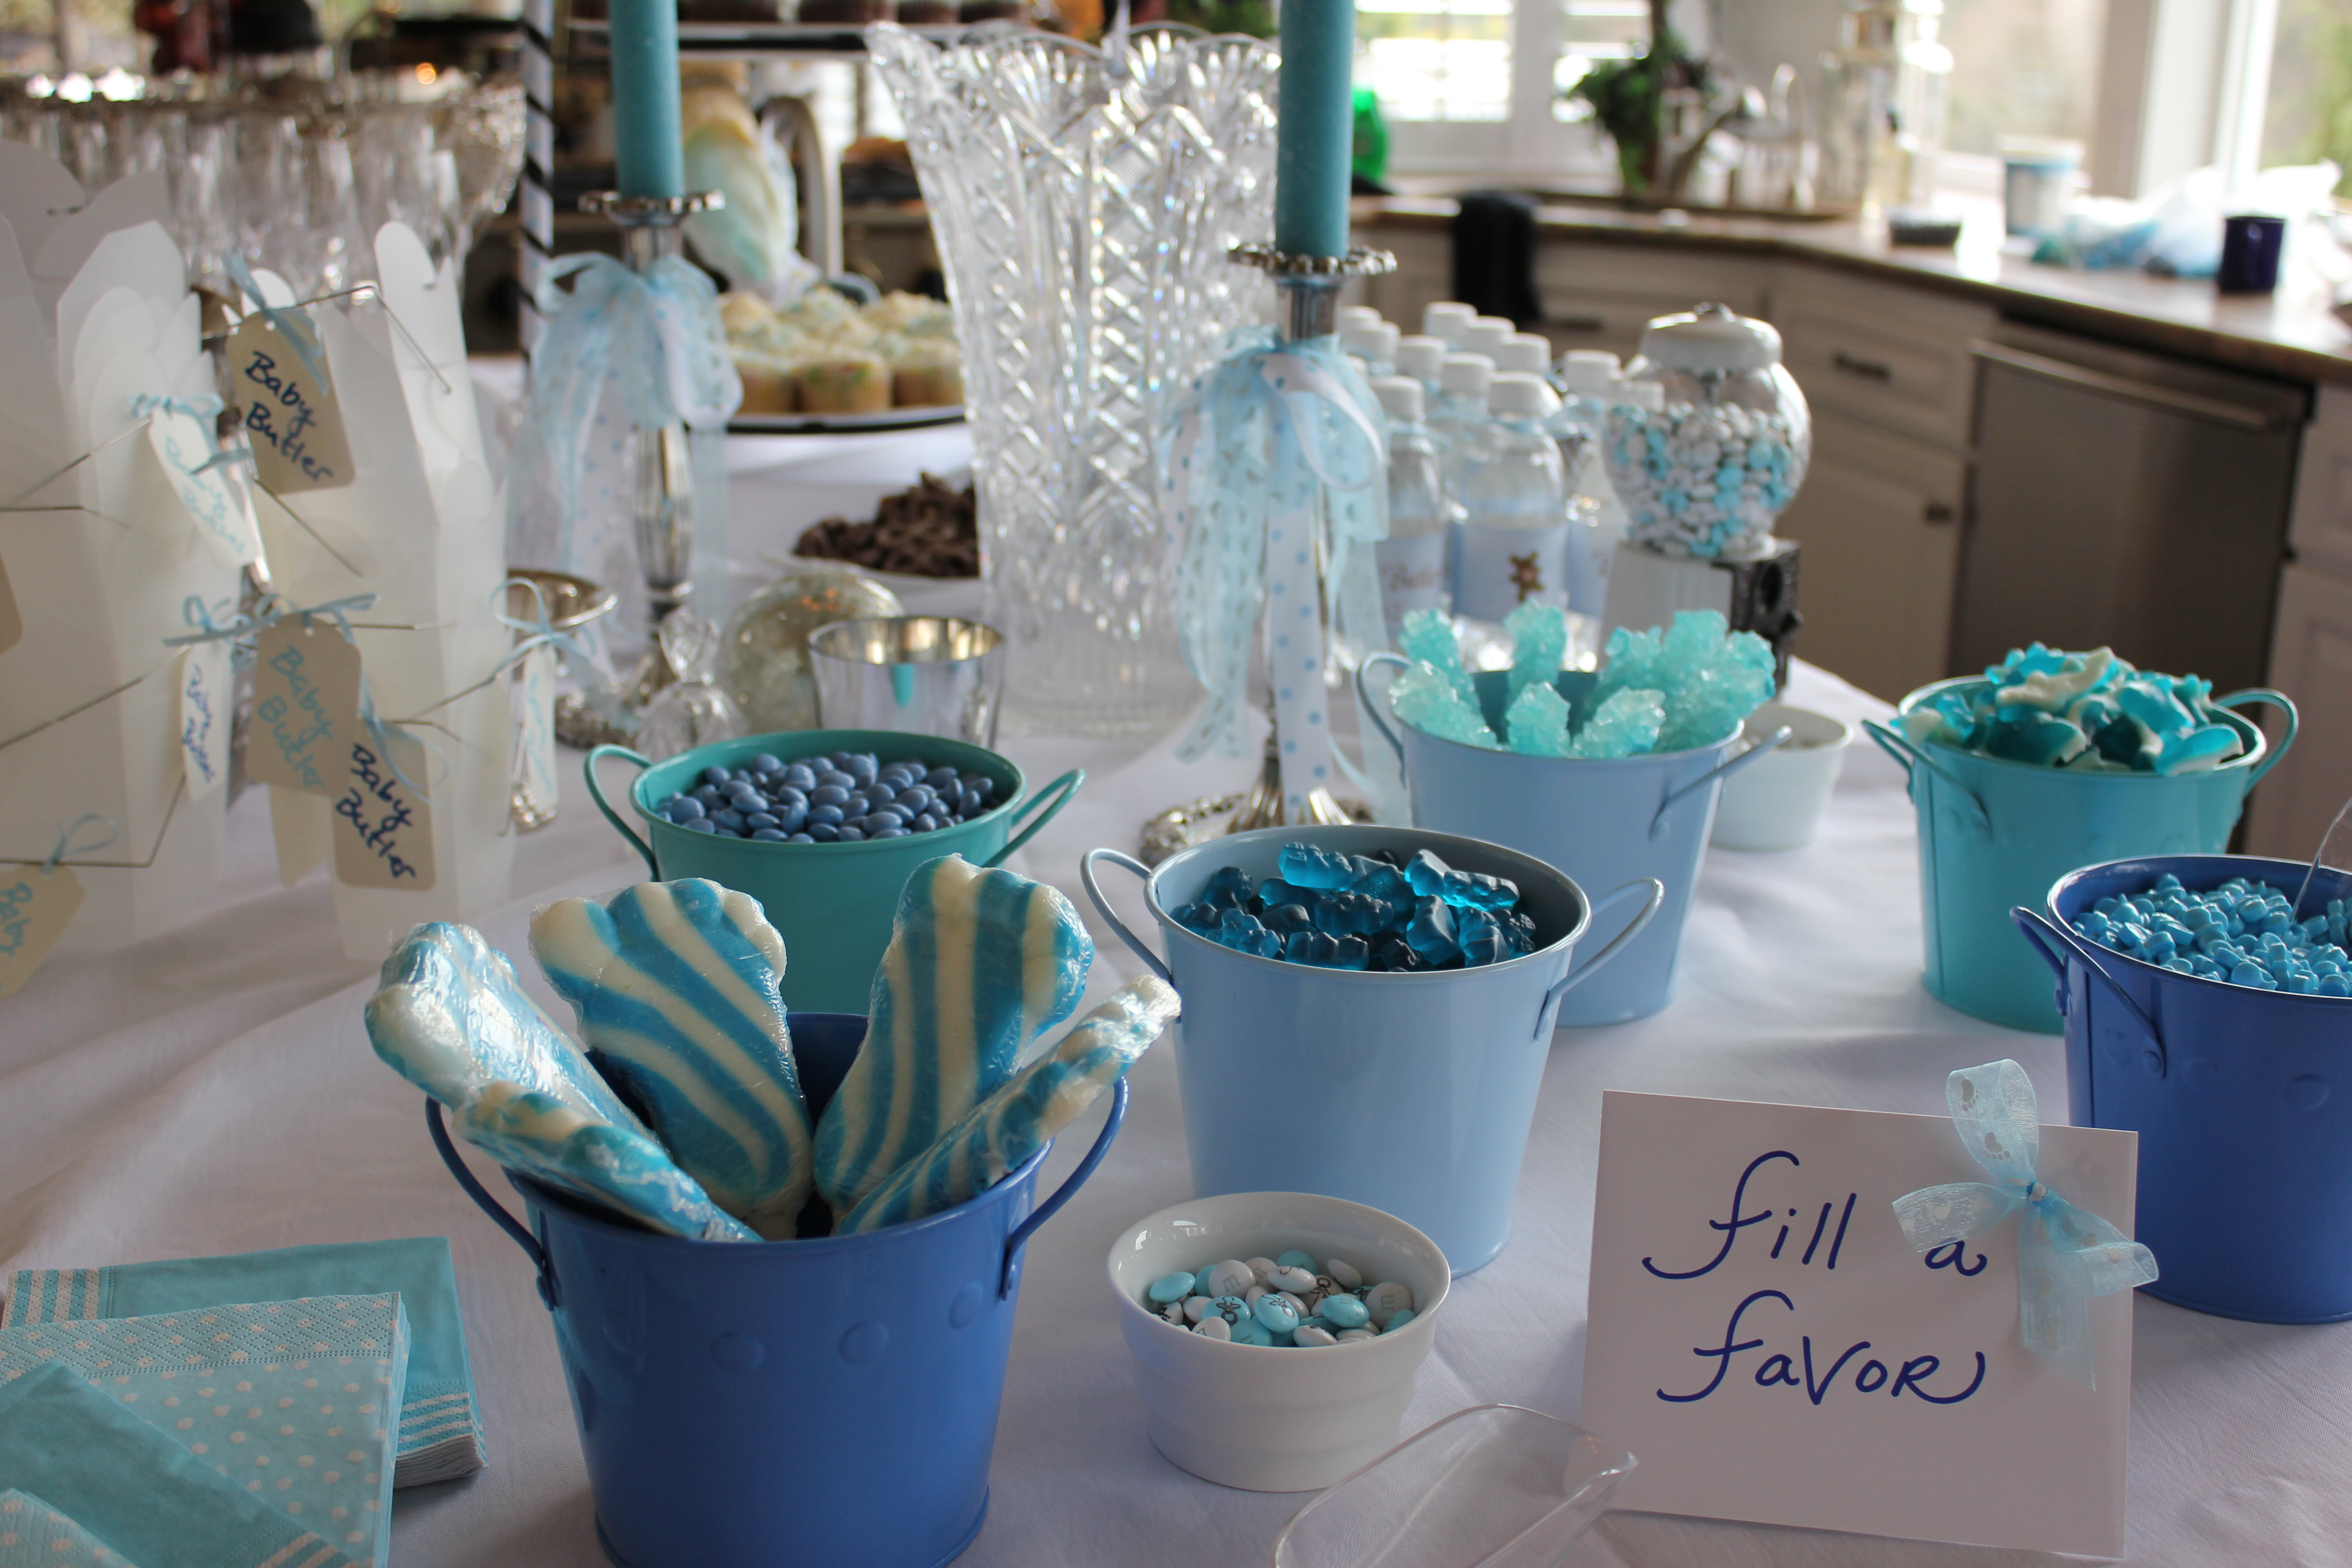 Best ideas about Baby Shower Table Decoration . Save or Pin Throwing a Baby Shower for a Boy Now.